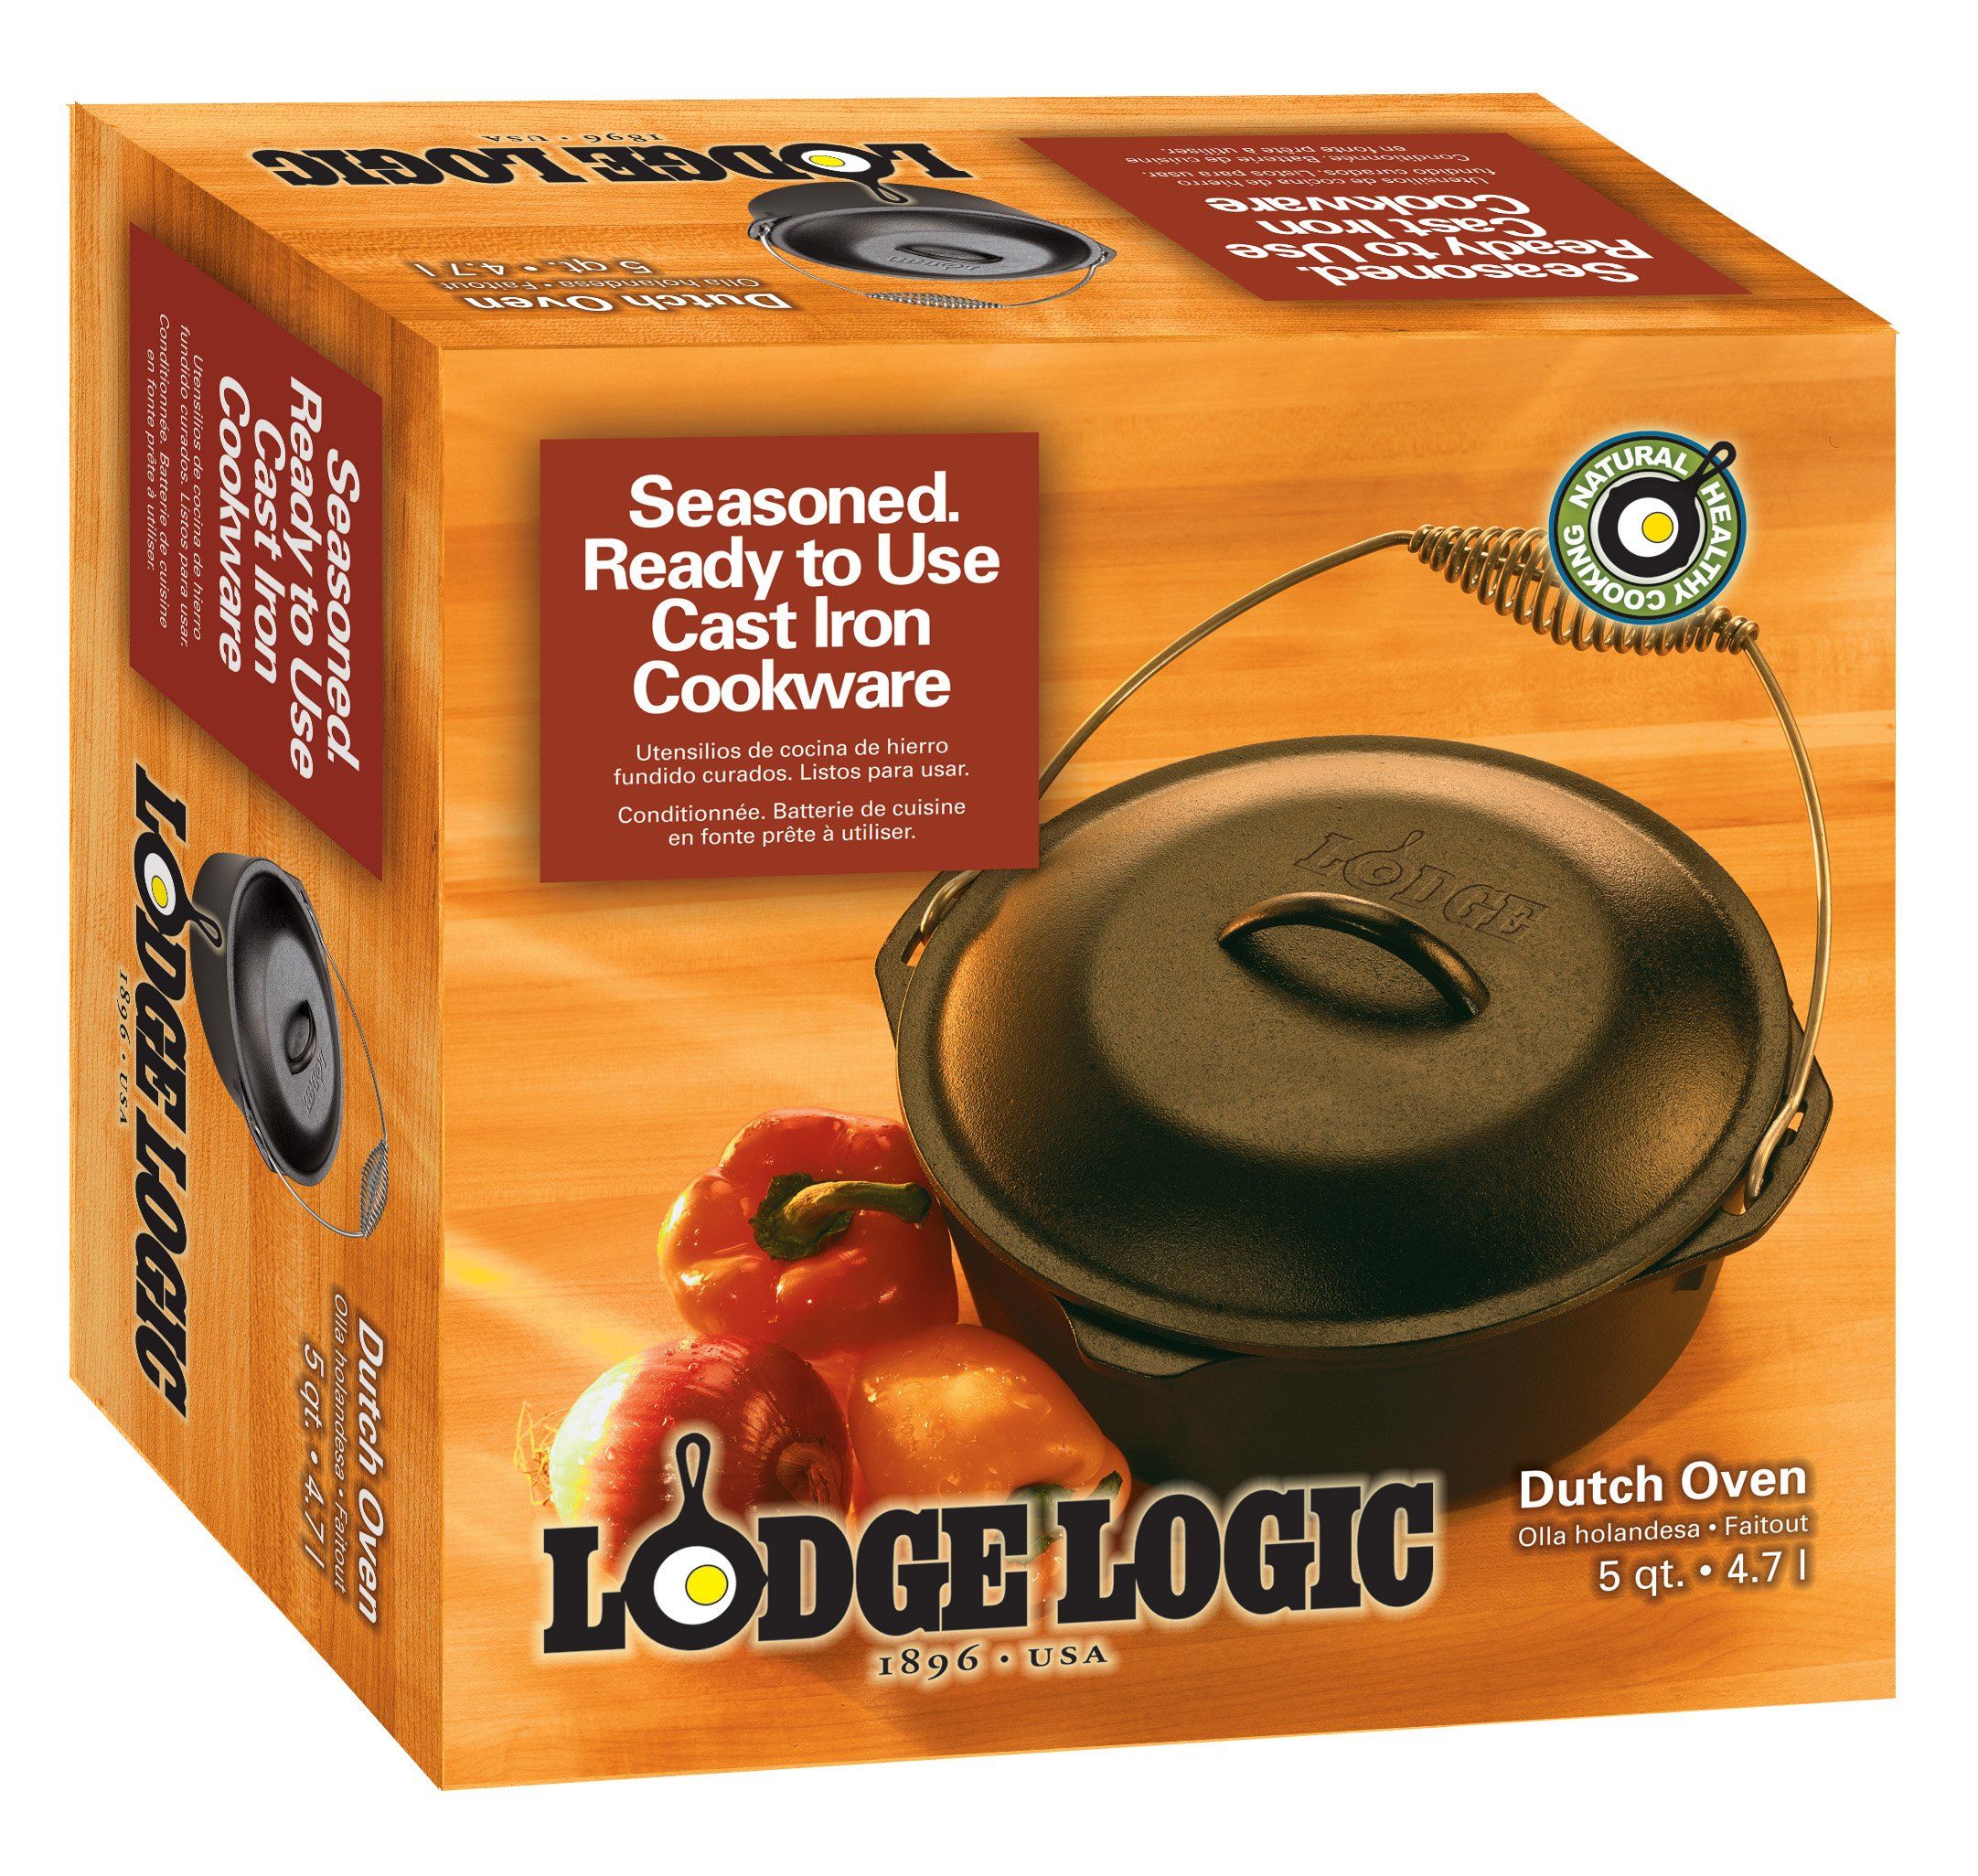 Lodge 5 Quart Cast Iron Dutch Oven. Pre Seasoned Cast Iron Pot and Lid with Wire Bail for Camp Cooking by Lodge